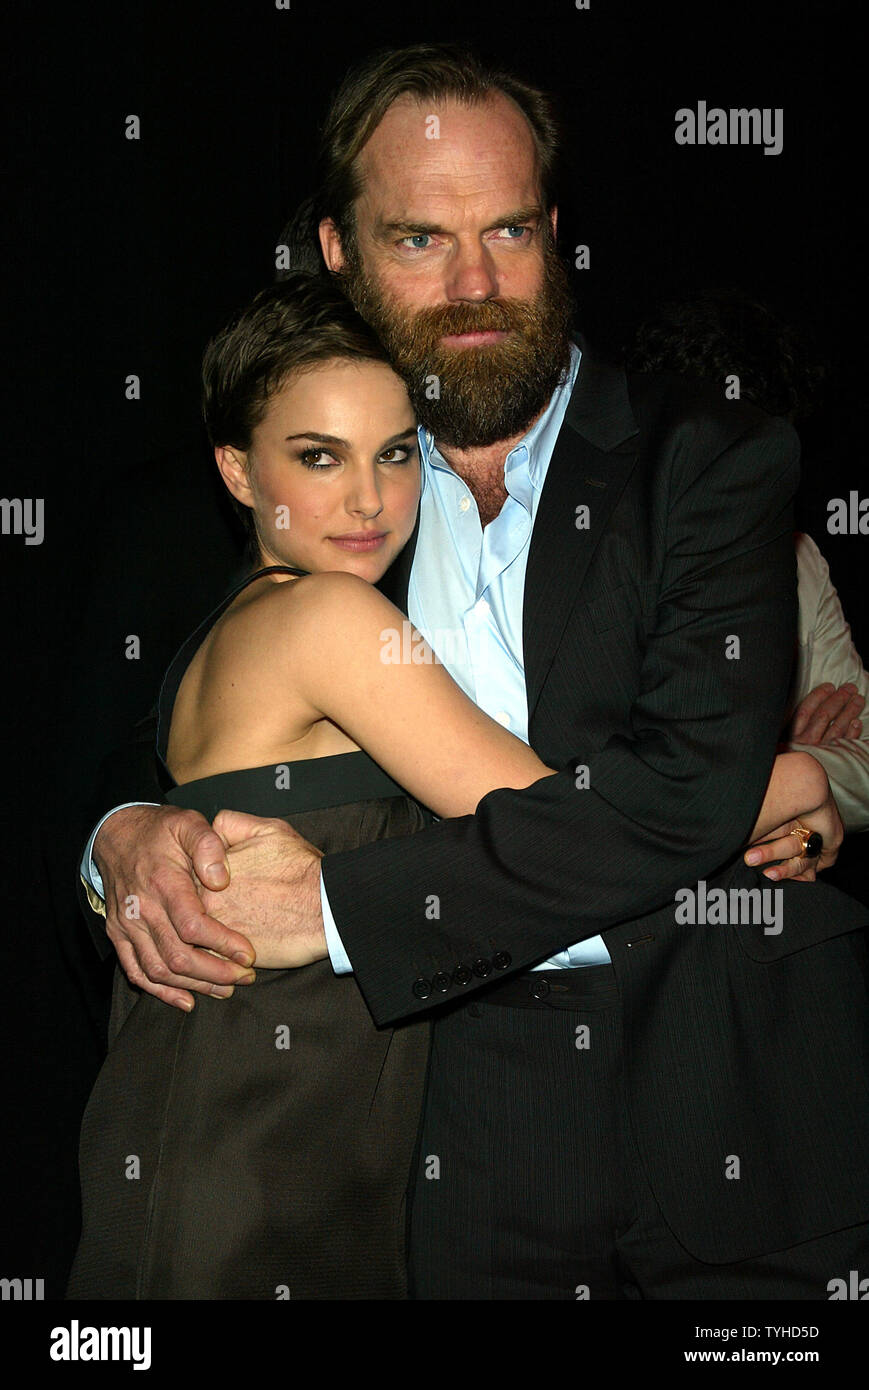 Hugo Weaving High Resolution Stock Photography And Images Alamy